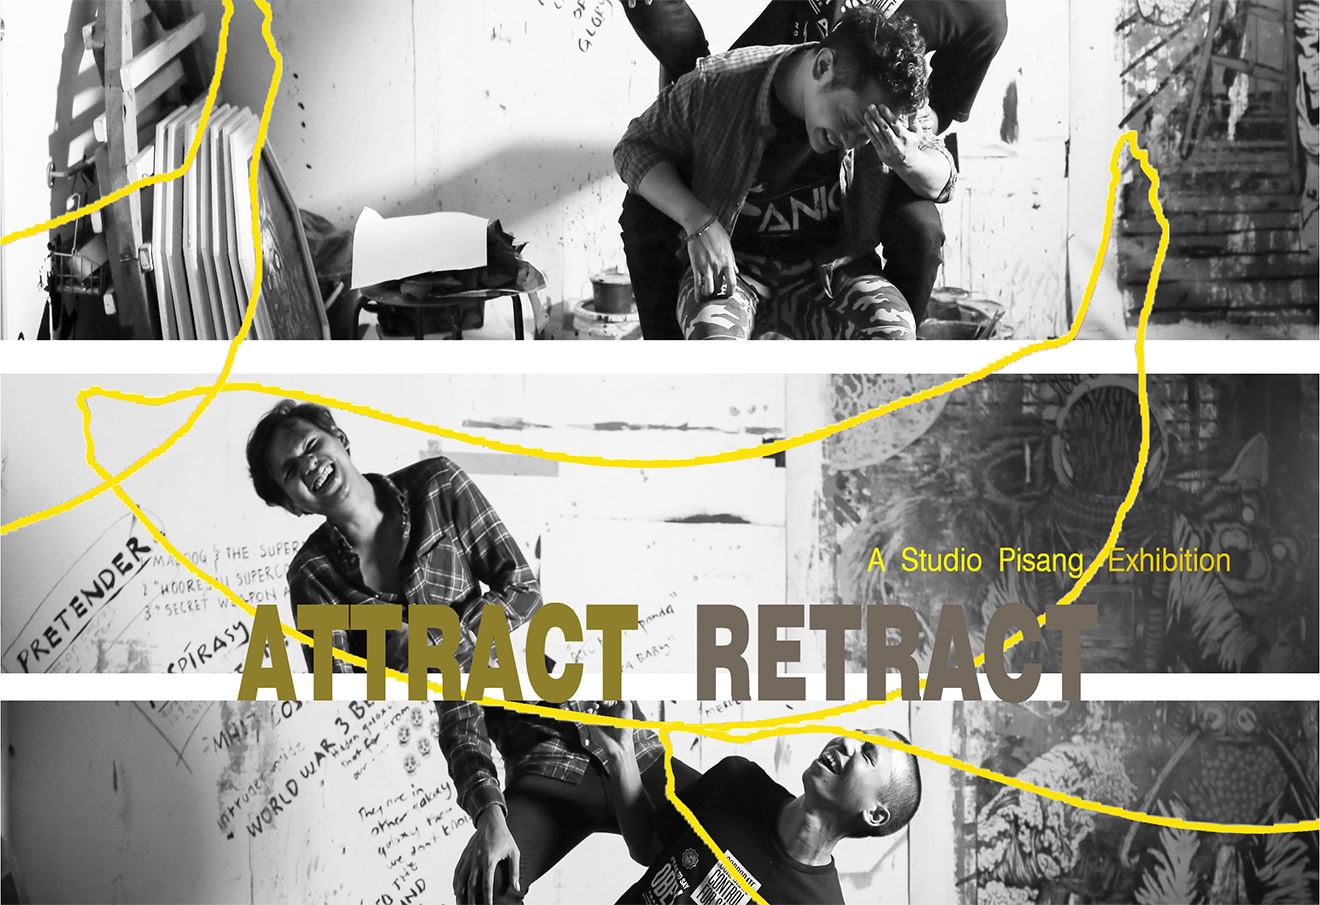 Attract Retract